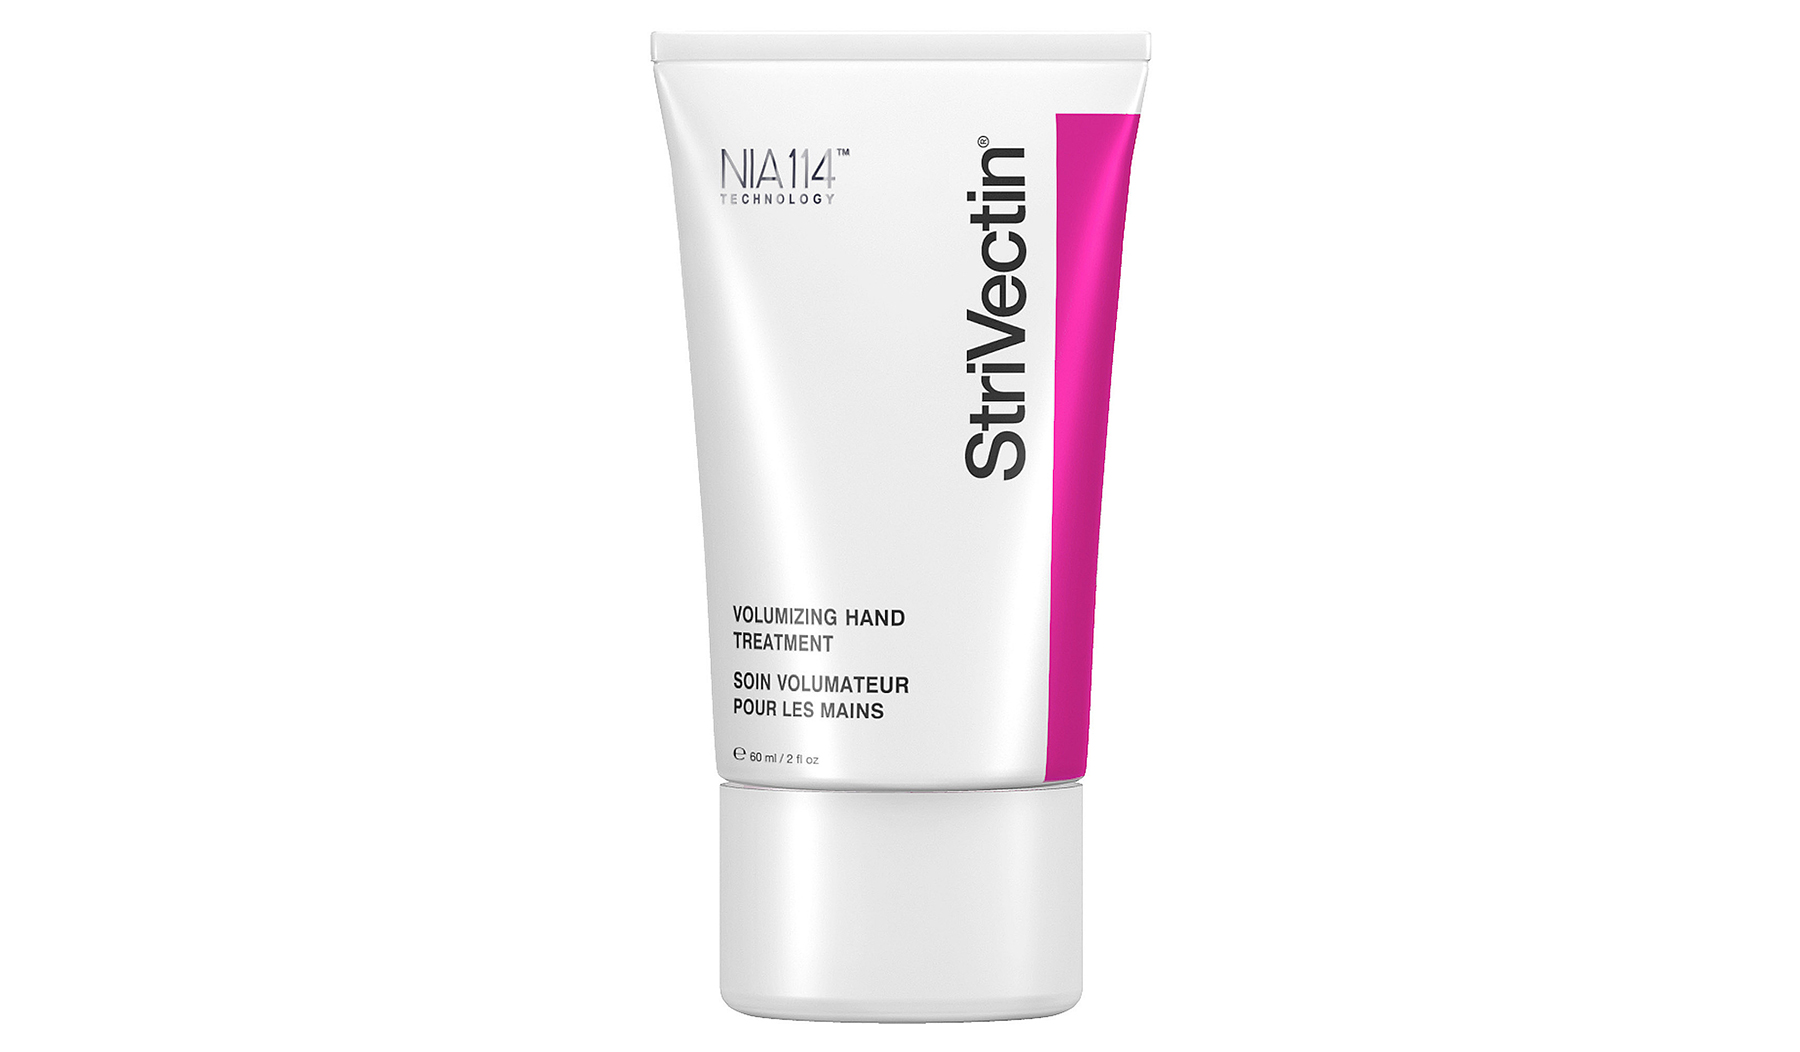 10 Best Anti Aging Hand Creams According To Reviews Real Simple